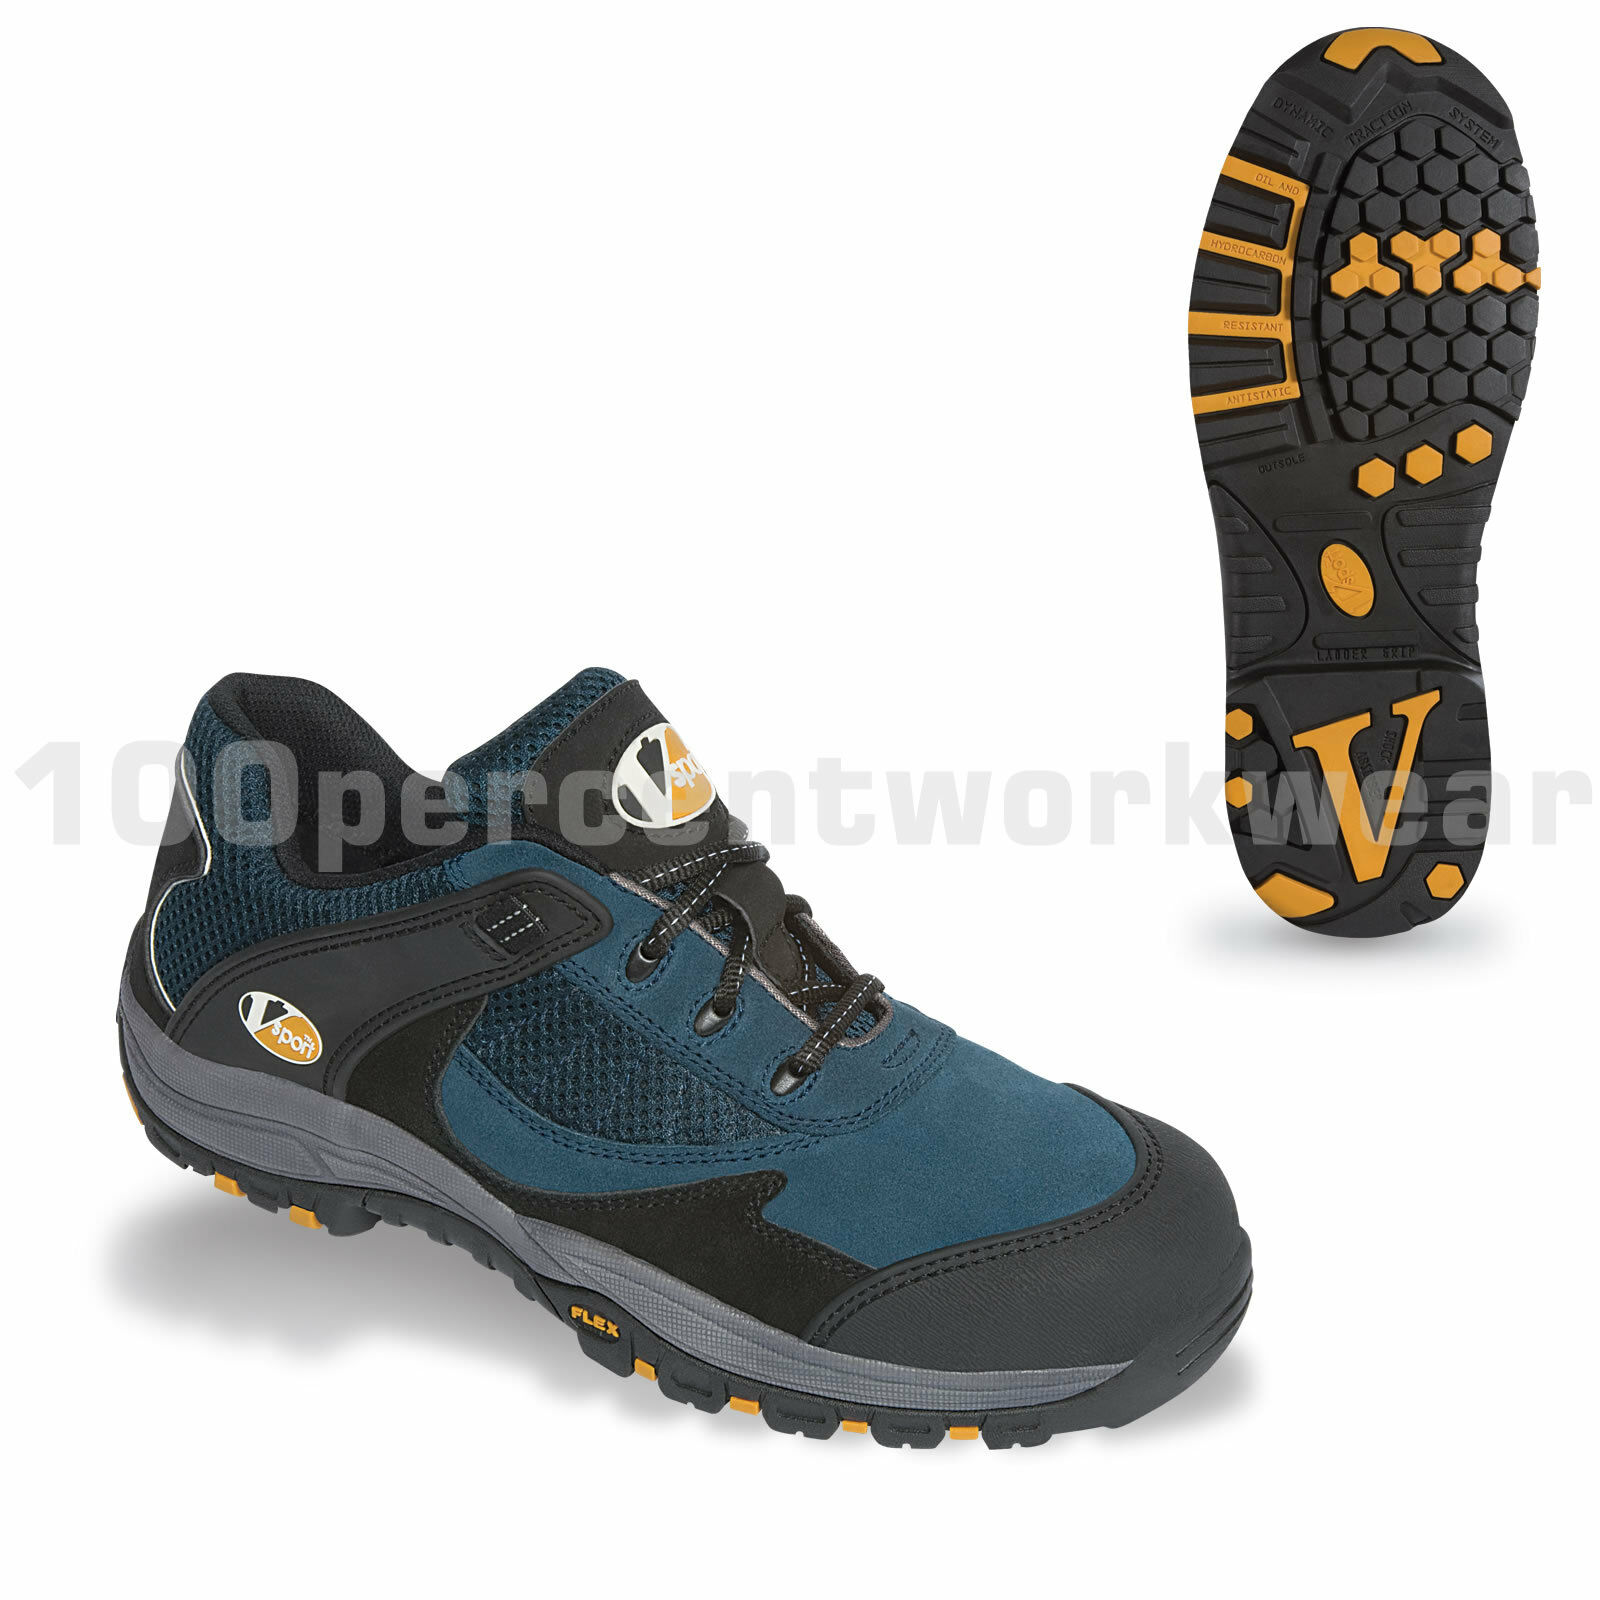 V12 Vtech Safety VS400 PITSTOP Work Trainers Schuhes Blau Free Suede Toe Cap Metal Free Blau 274128